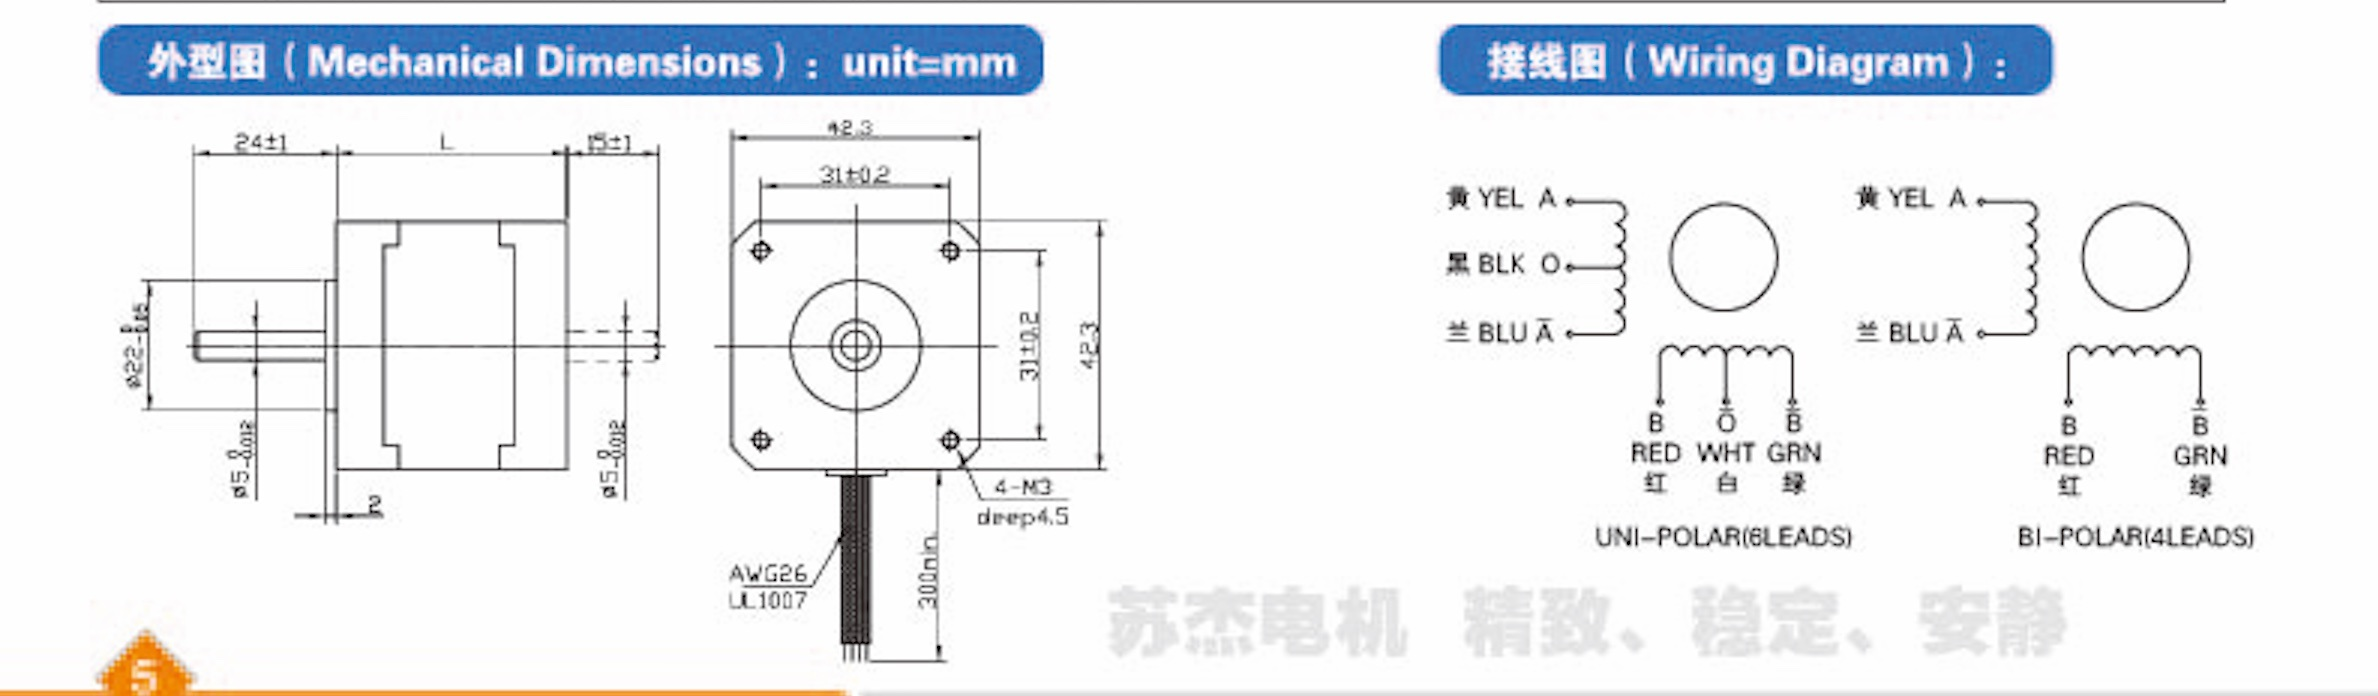 Gear Motor Stepper With Nema17 Size 28mm Length Servo Wiring Diagram Notewe Can Manufacture Products According To Customers Requirements